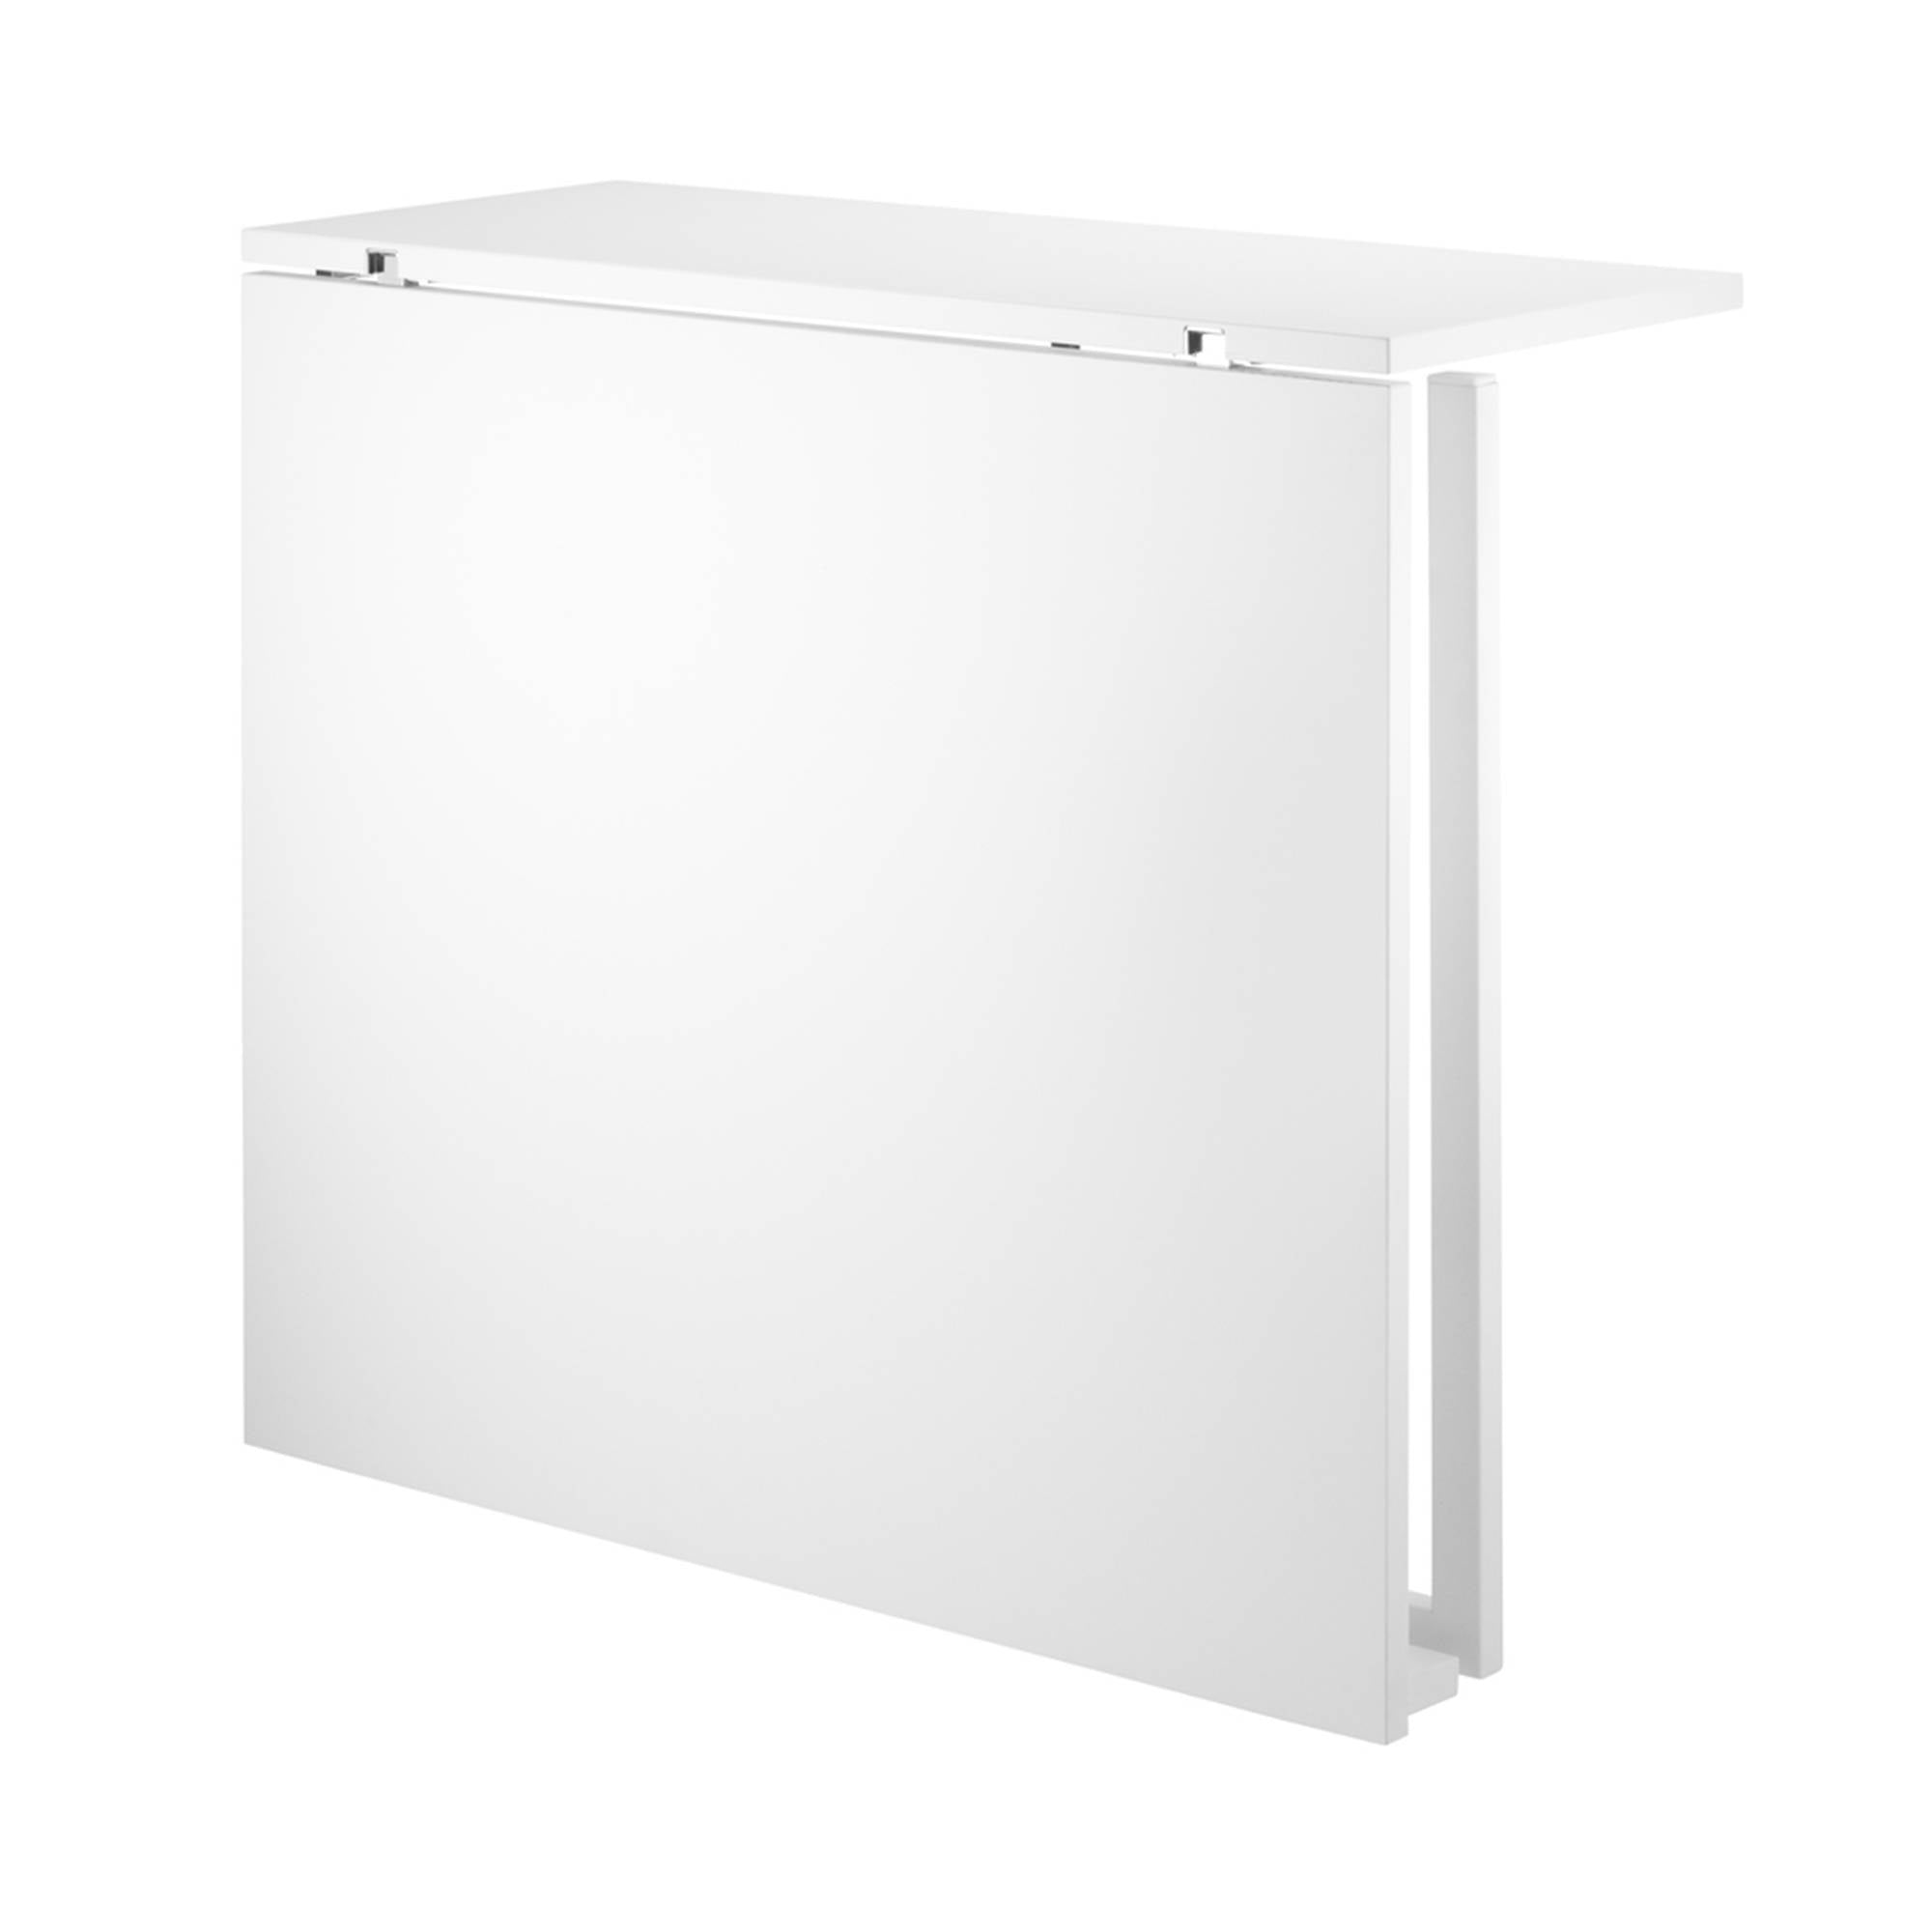 String Shelving System Folding Table: White + White Legs